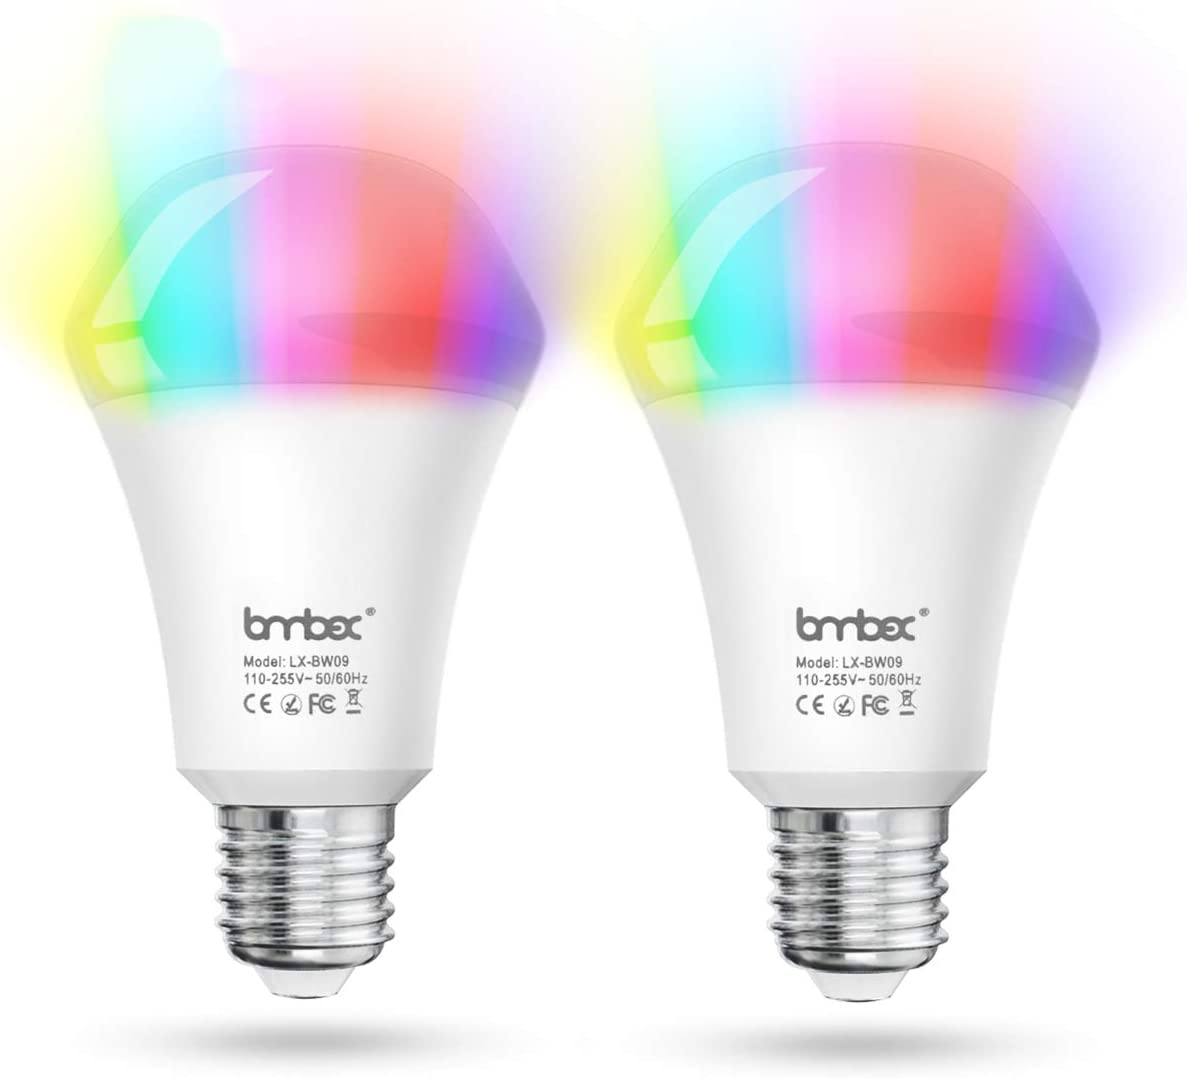 G SOUL Smart Light Bulb Alexa Colour Changing Light Bulb E27 Smart LED Bulb, 10w Dimmable Bulb, No Hub Required Compatible with Alexa, Google Home and IFTTT 2 Pack